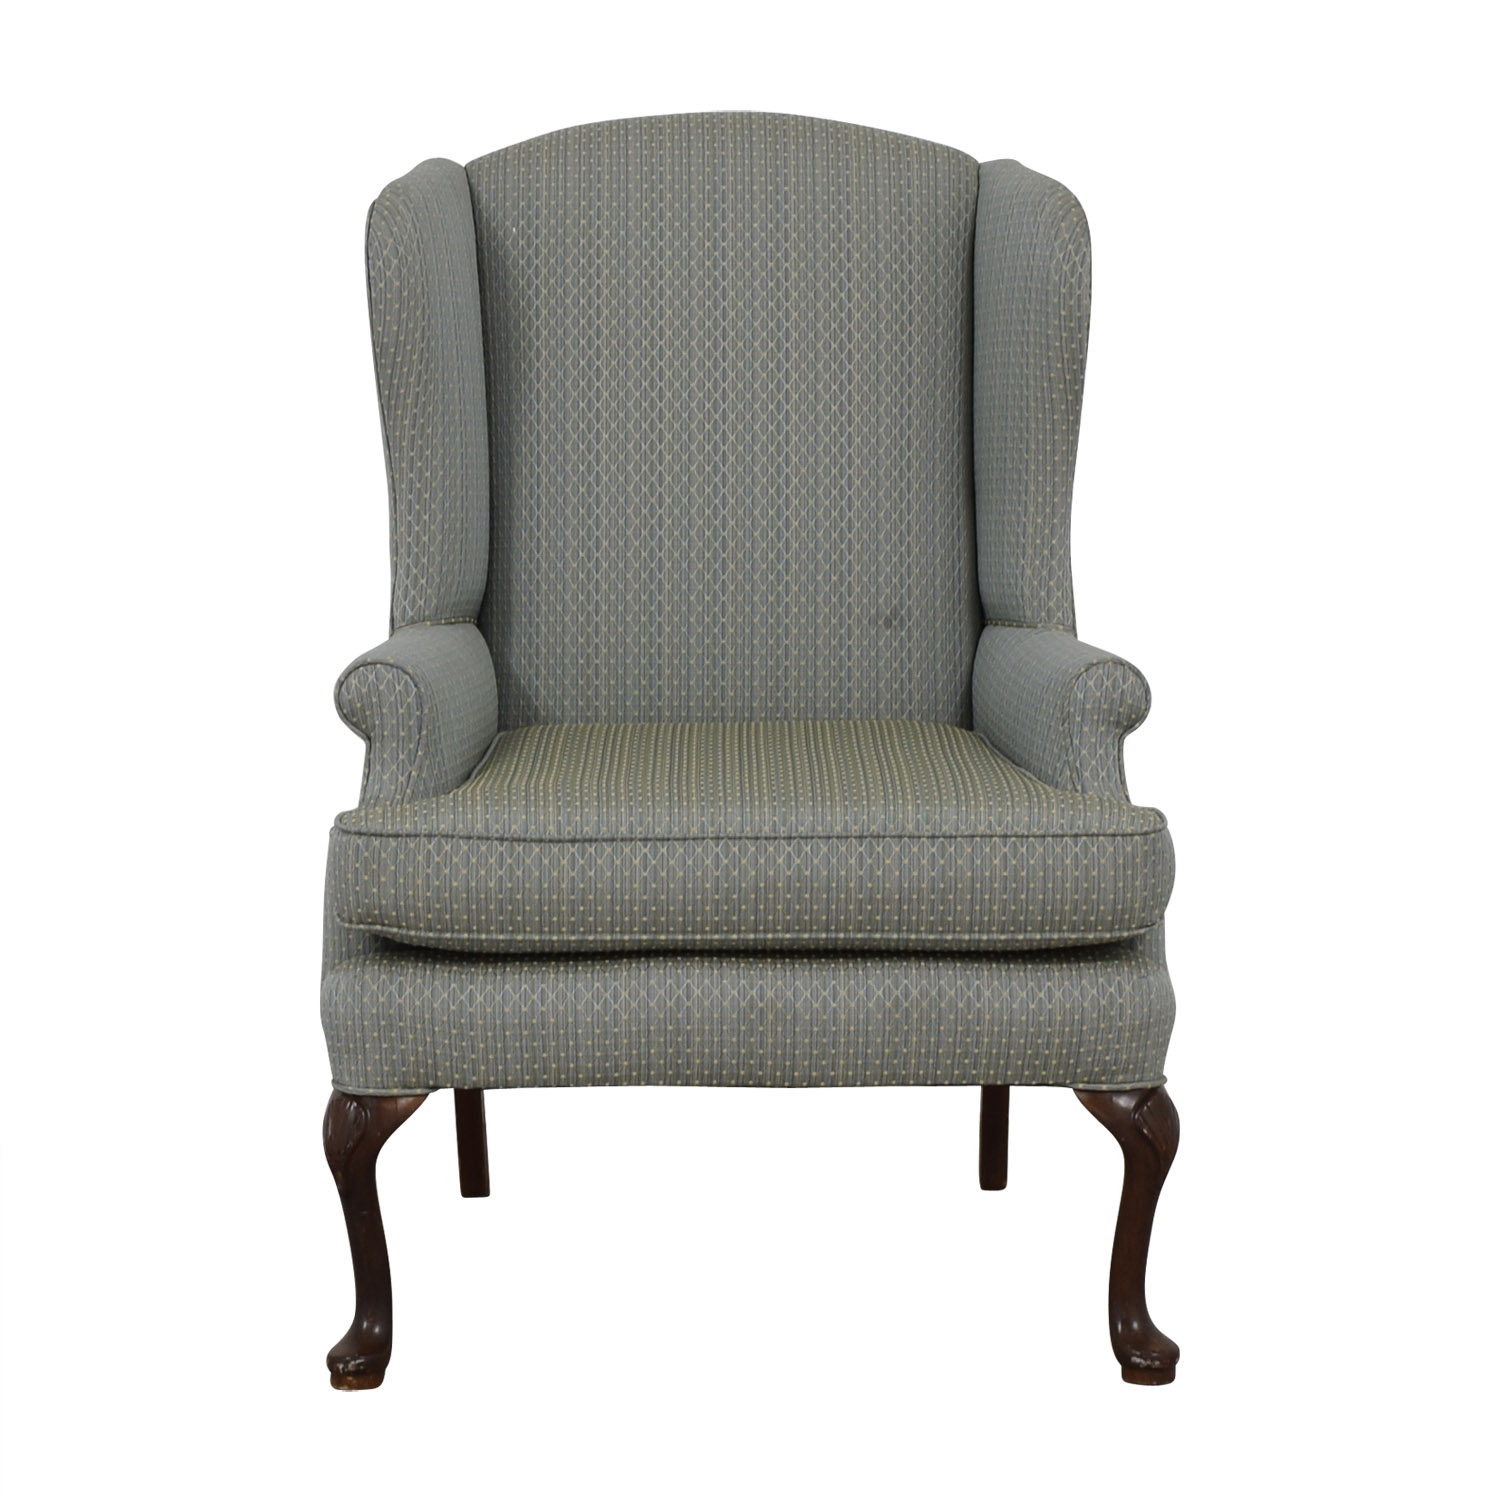 Incredible 90 Off Blue Wingback Accent Chair Chairs Bralicious Painted Fabric Chair Ideas Braliciousco